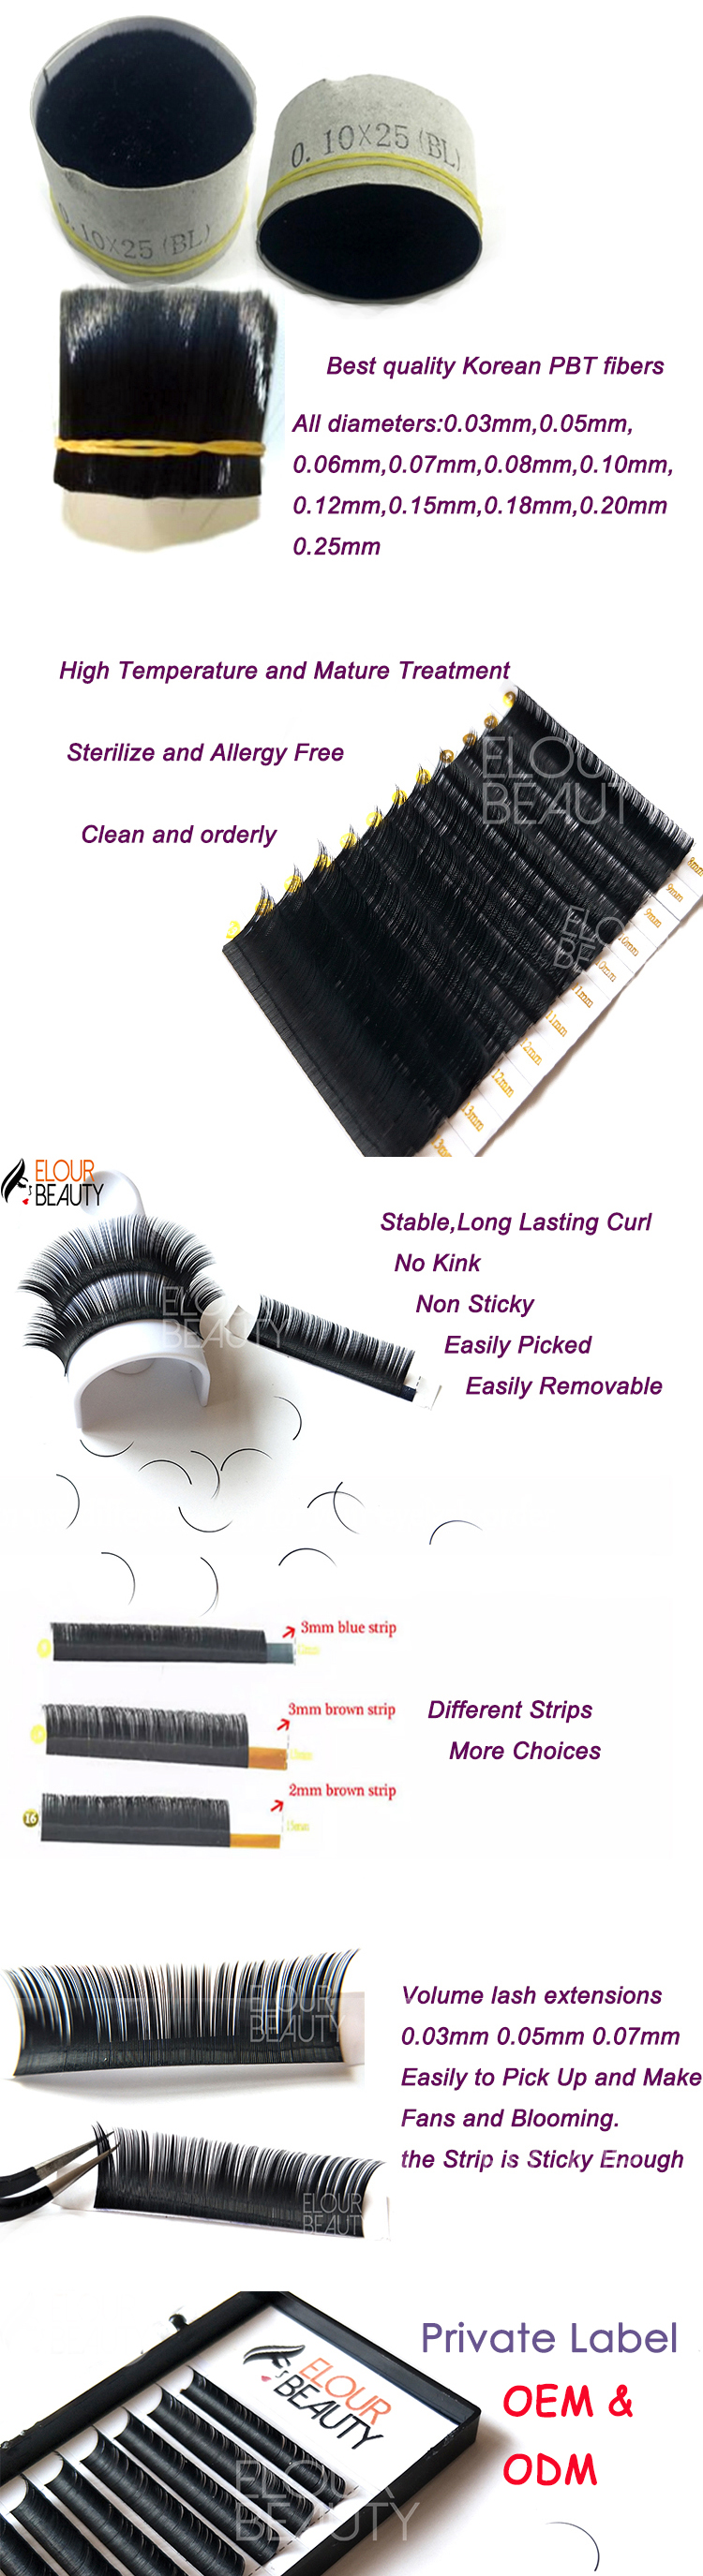 eyelash extensions China wholesale supplies.jpg